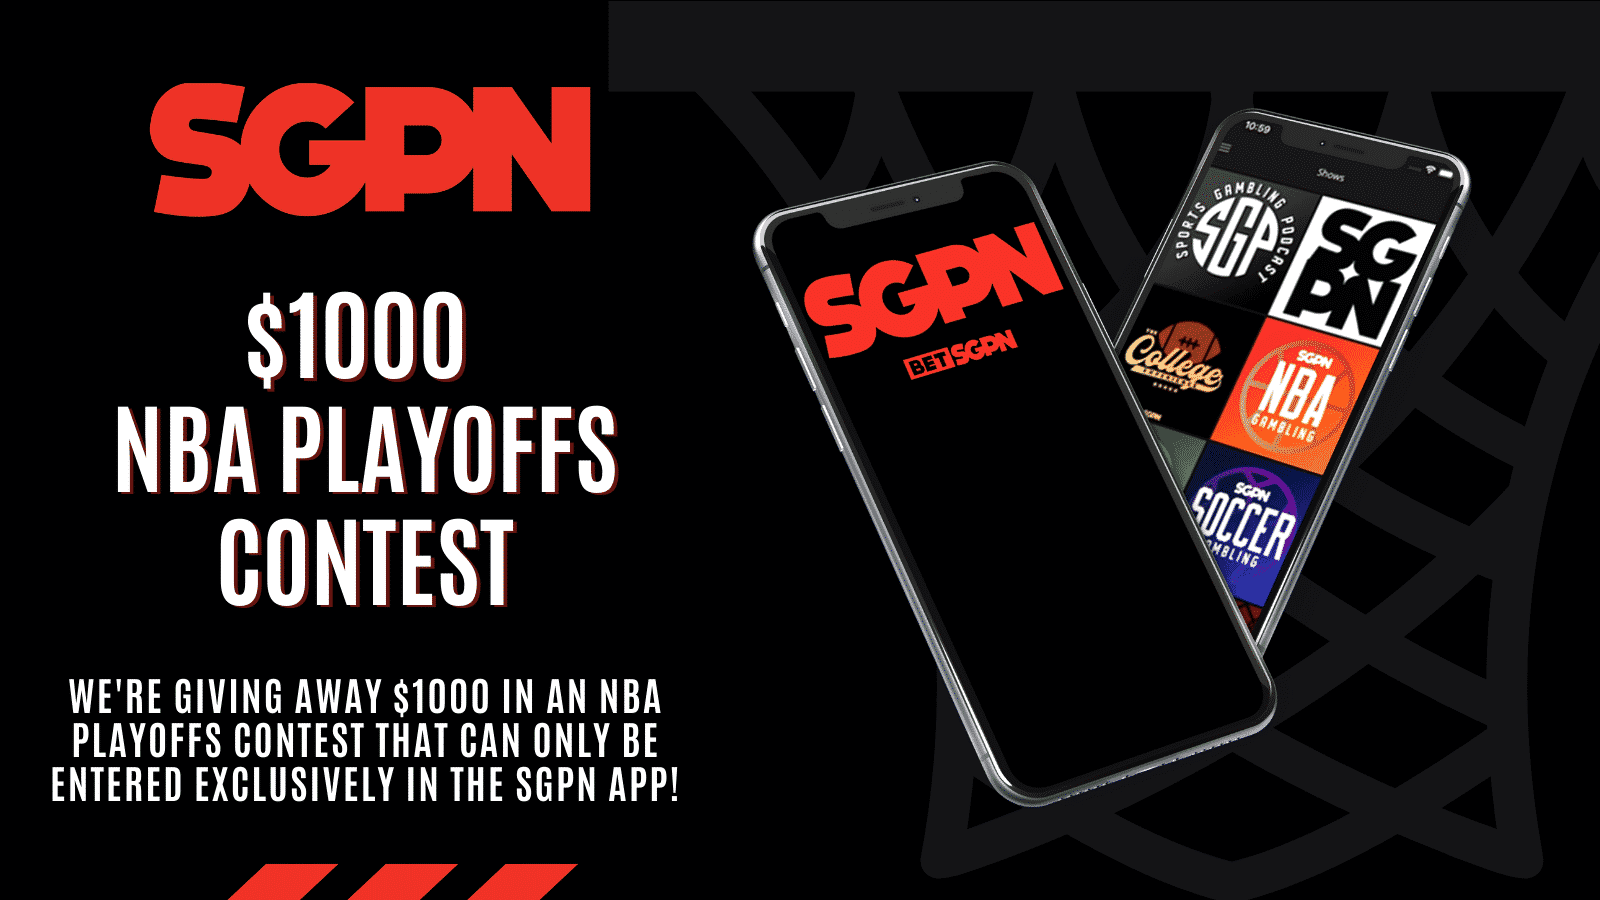 SGPN App Is Live With A $1000 NBA Freeroll